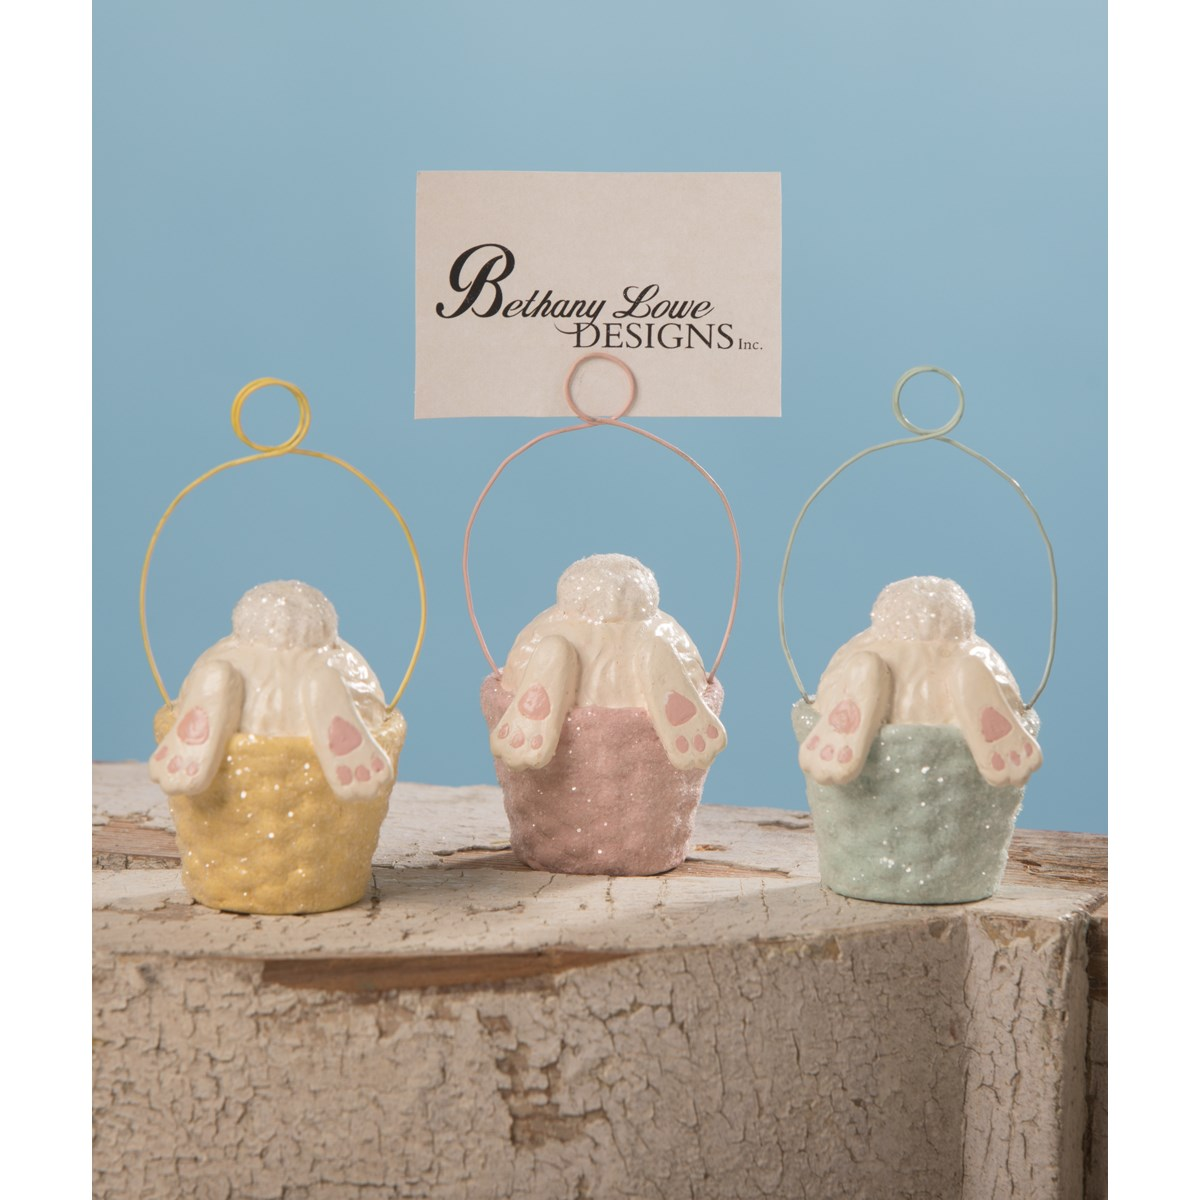 Bunny Tail Ornaments & Place Card Holders S3